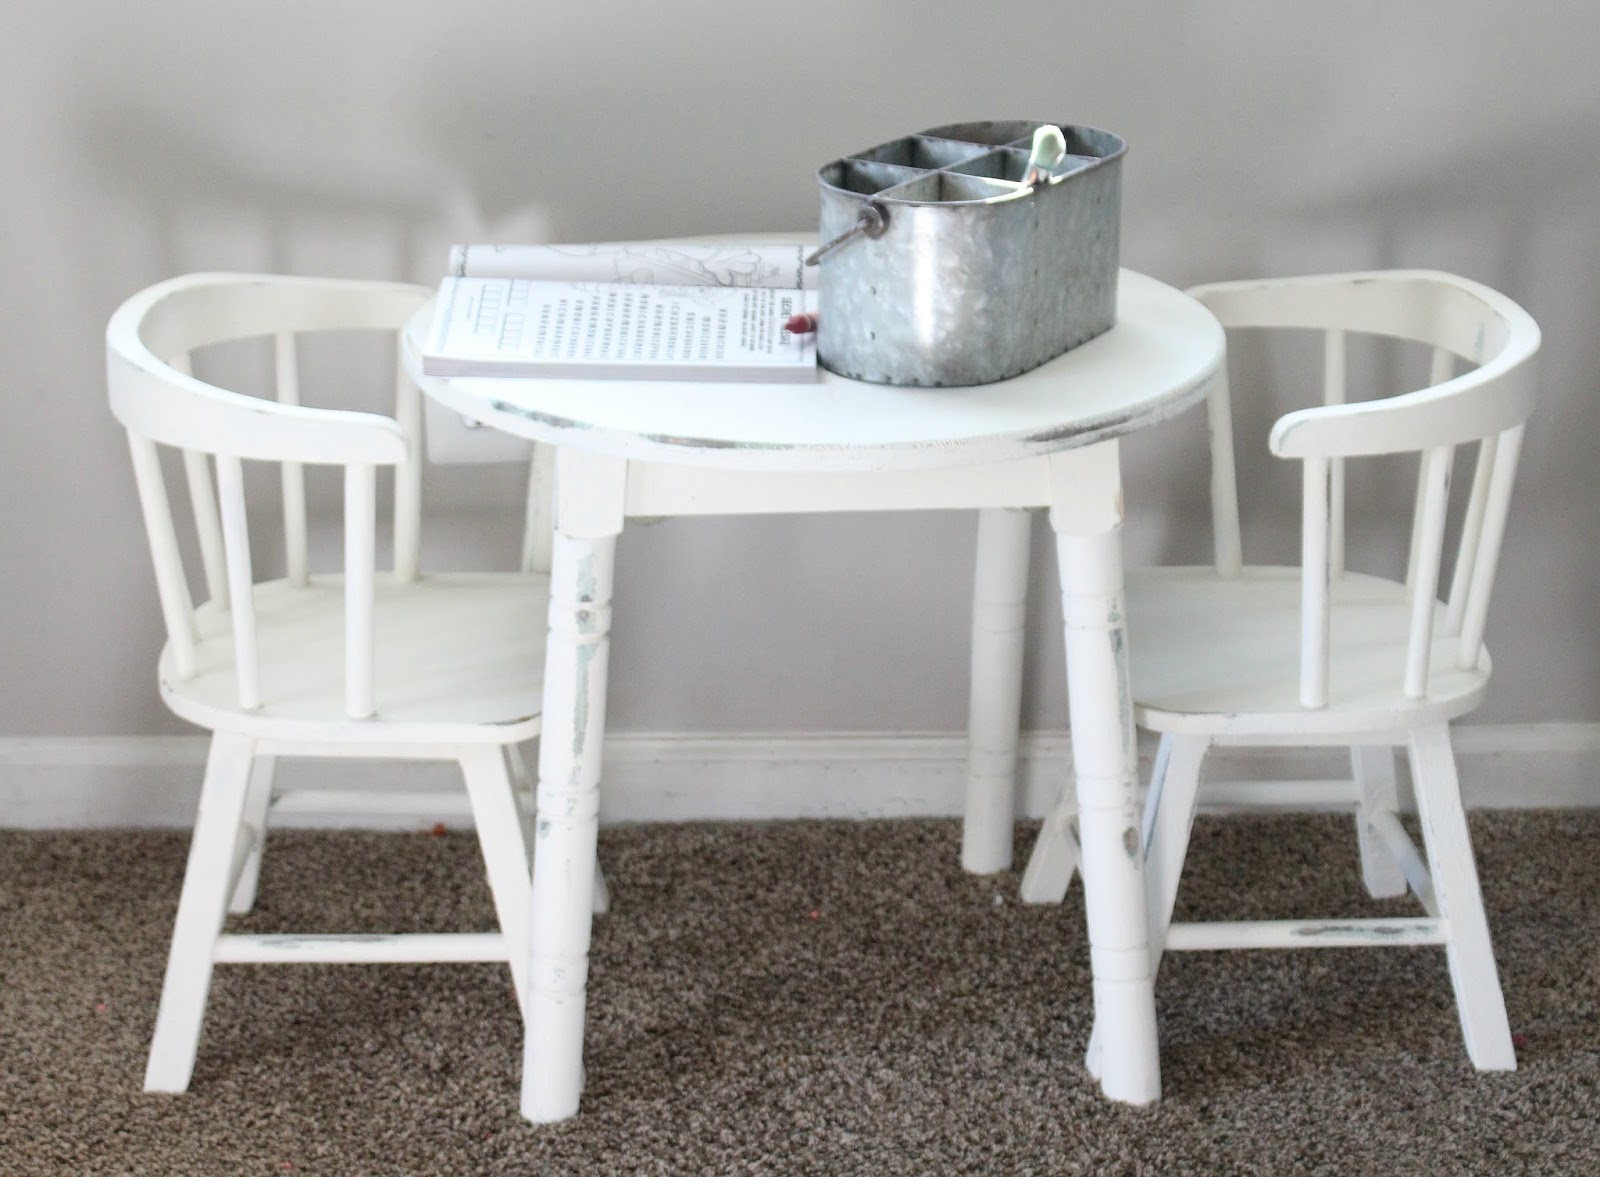 Vintage Table And Chairs Parsons Pier One Kids Makeover With Chalk Paint The Glam Even A Sander I Wasn T Able To Get Rid Of All Texture But That S Okay Just Think It Adds Chippy Vibes Don You